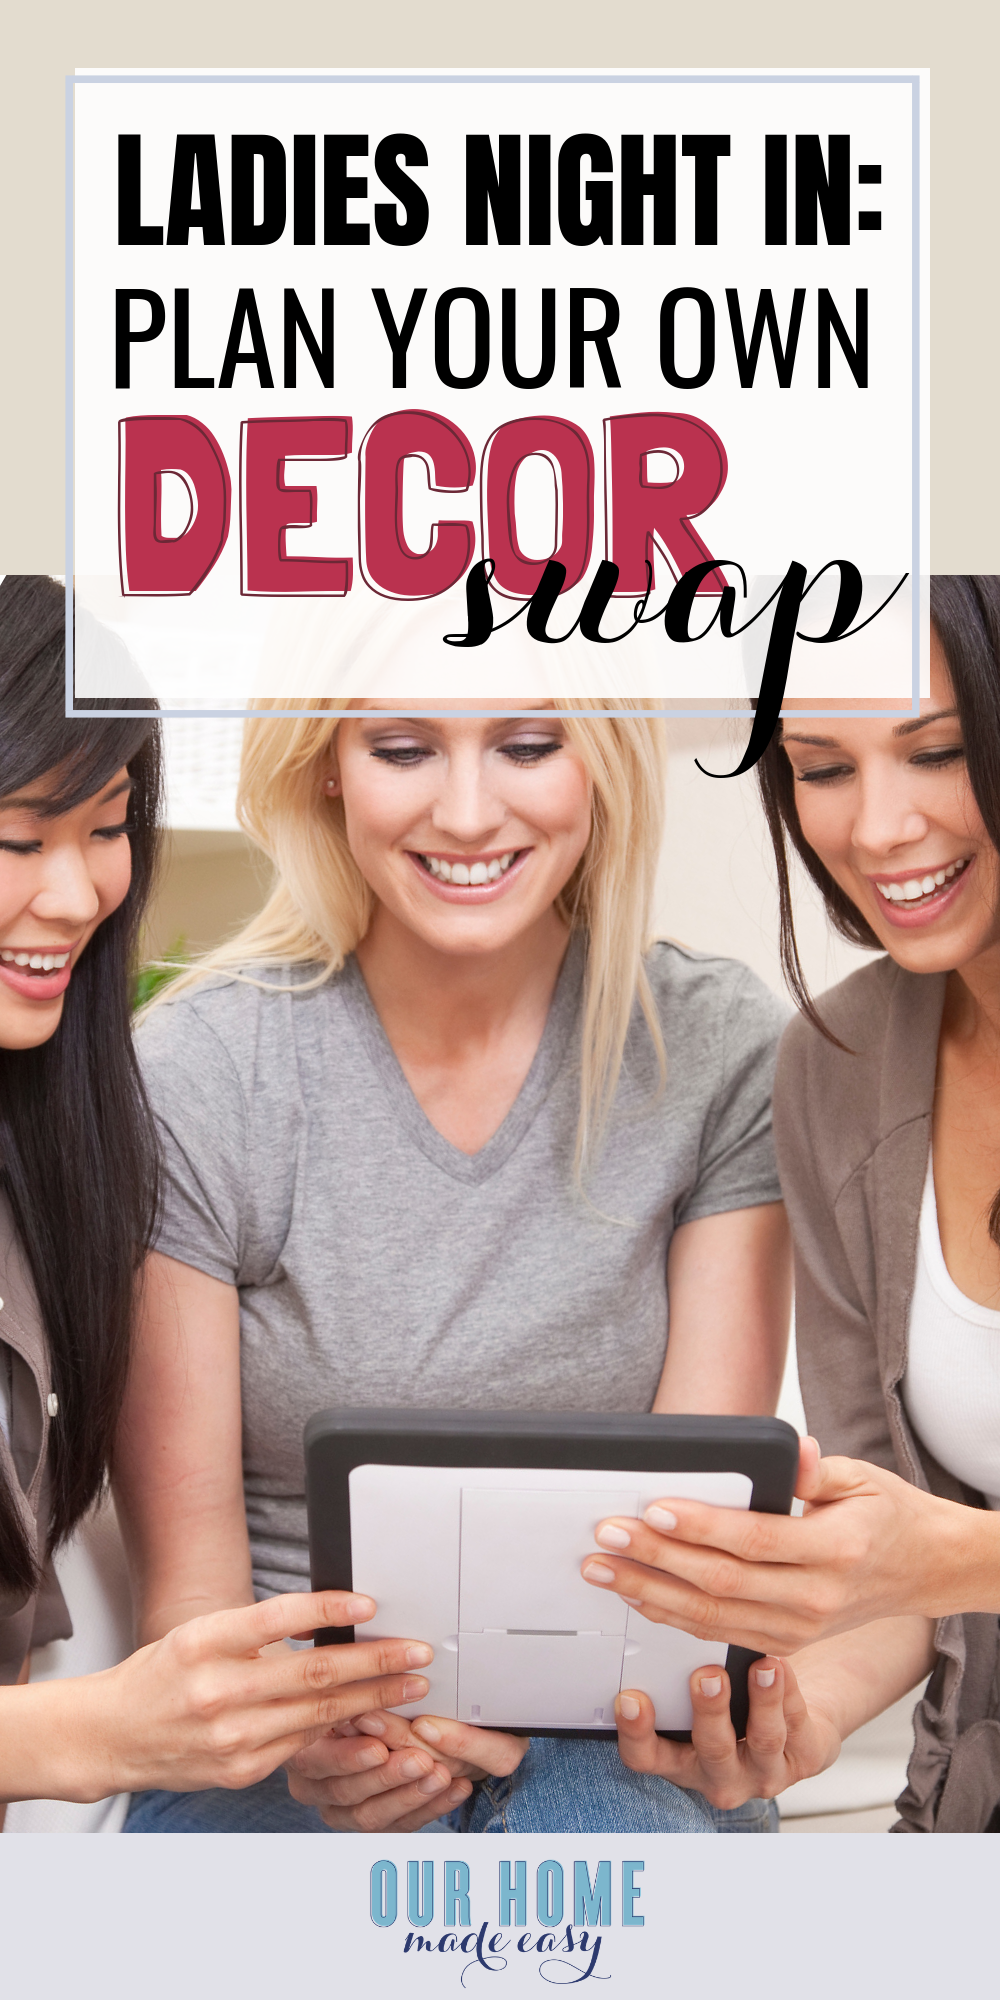 Ladies Night In: Plan a decor swap and start planning your holiday decor on a budget!